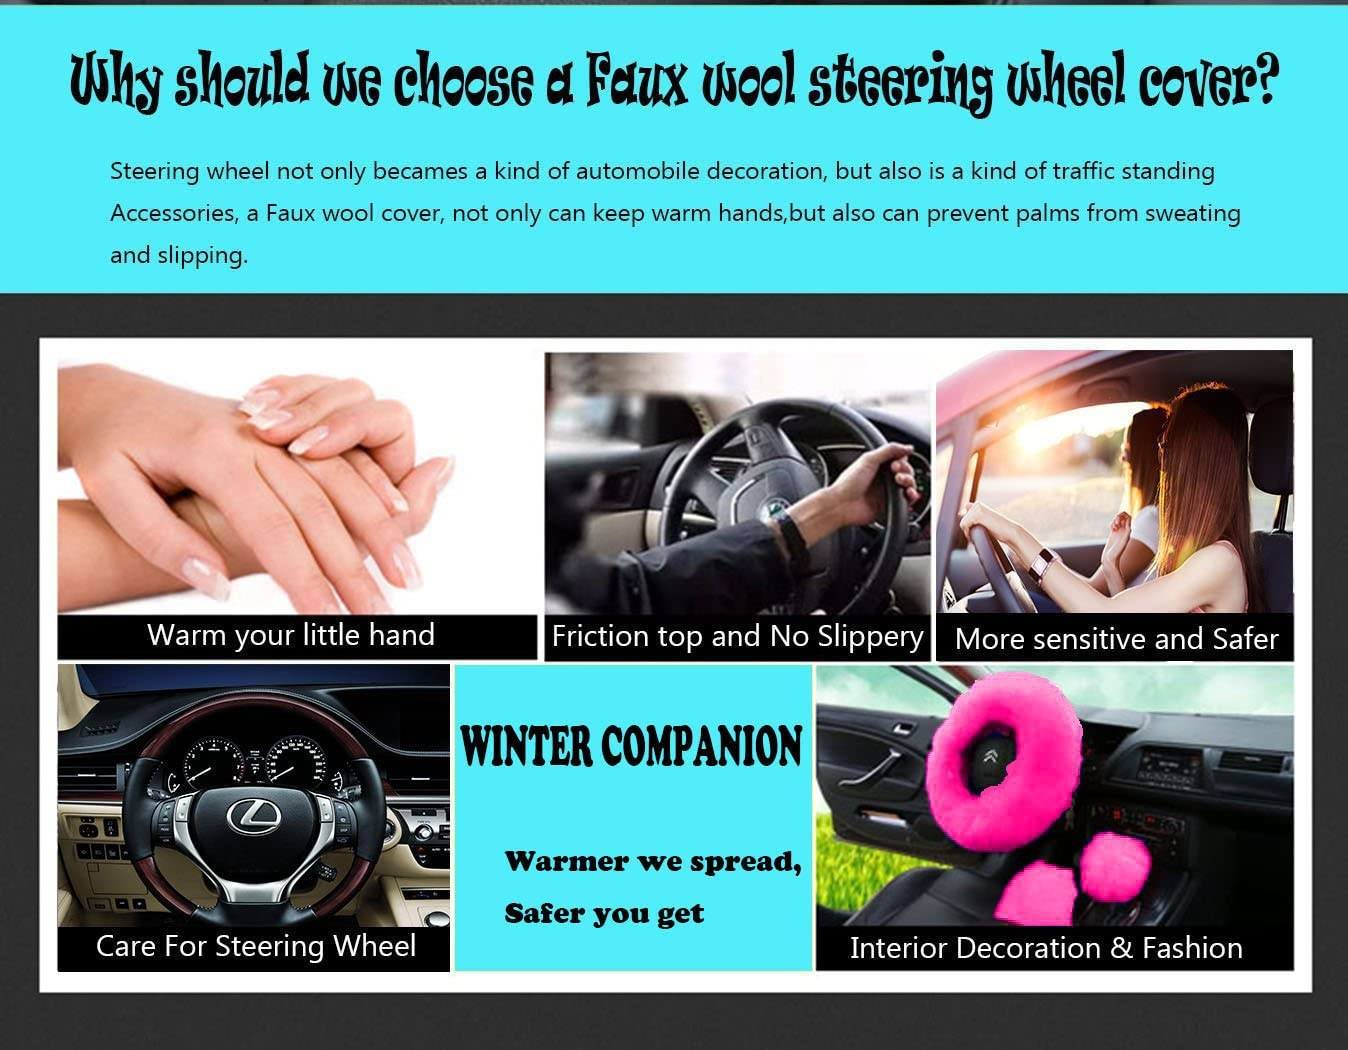 Rose red Younglingn Car Steering Wheel Cover Gear Shift Handbrake Fuzzy Cover 1 Set 3 Pcs Multi-colored with Winter Warm Pure Wool Fashion for Girl Women Ladies Universal Fit Most Car